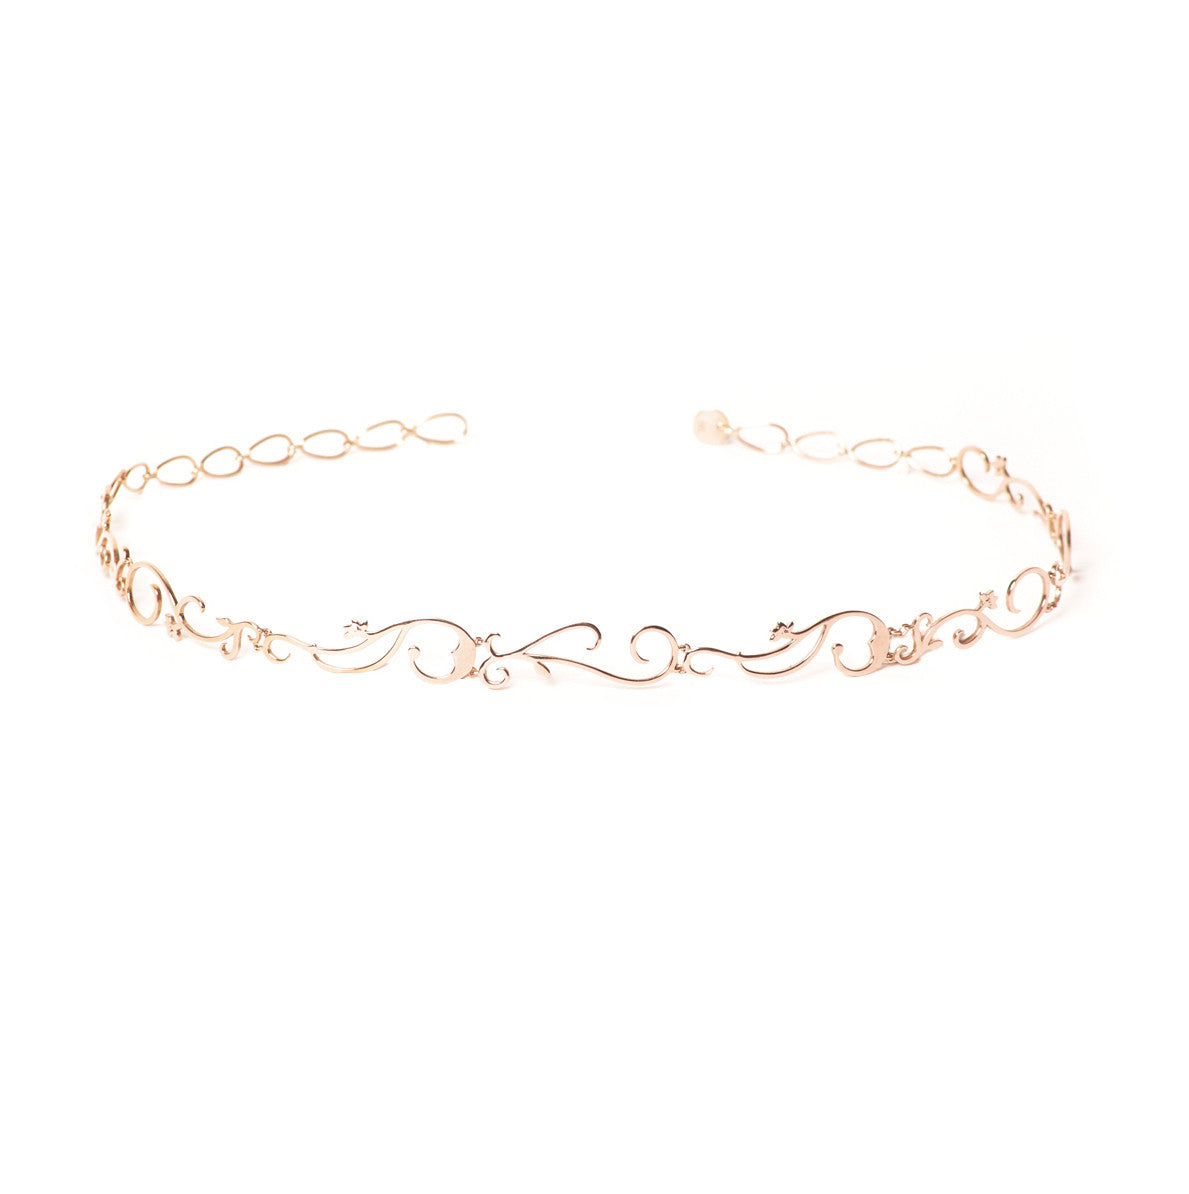 Diane Kordas Jewellery Vine Choker All Gold 18k gold